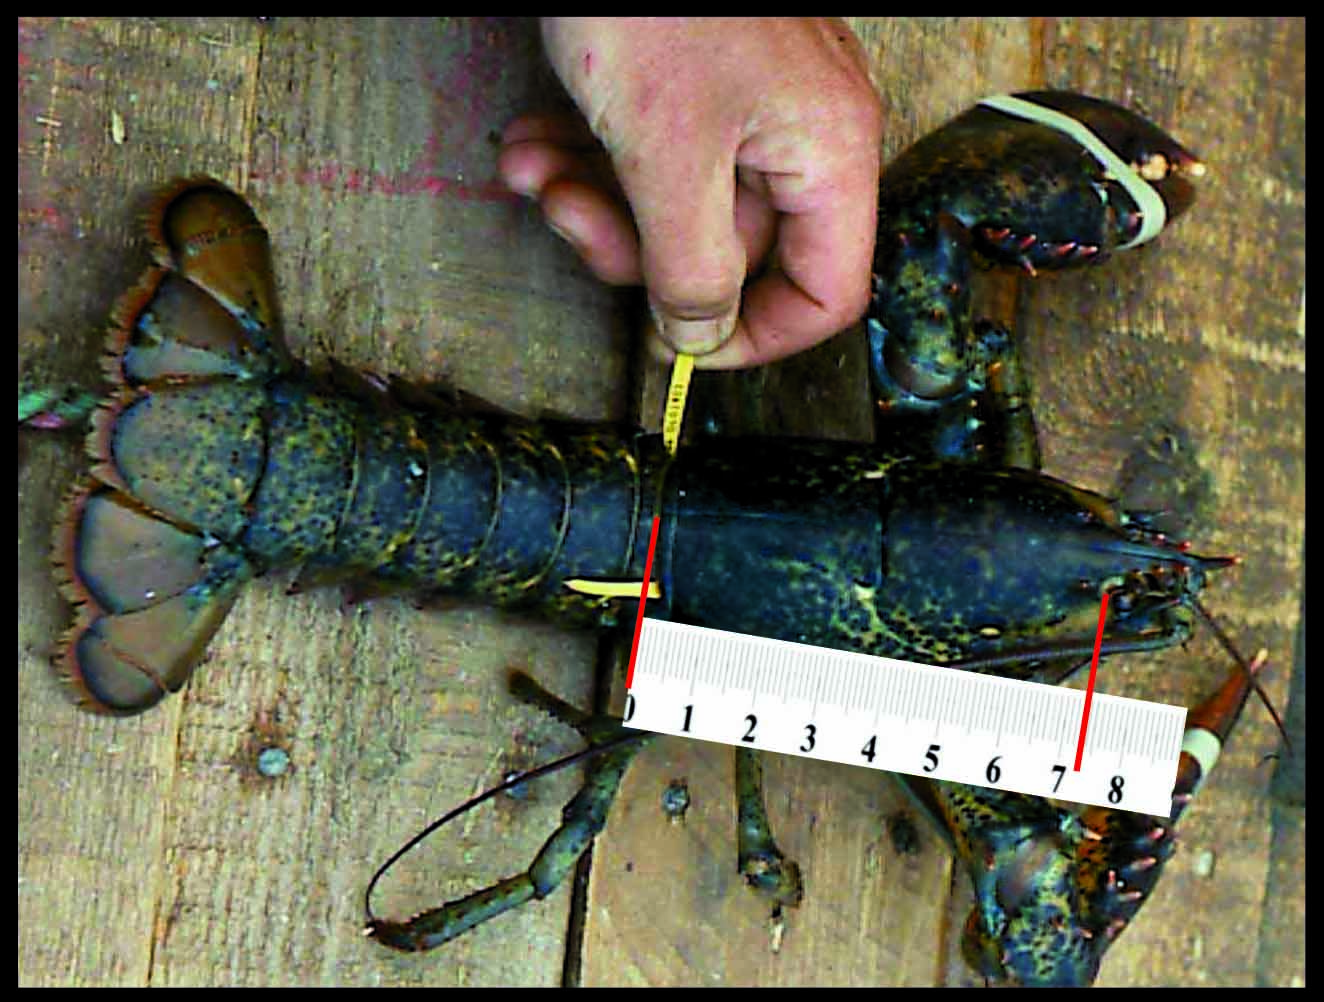 Tagged lobster